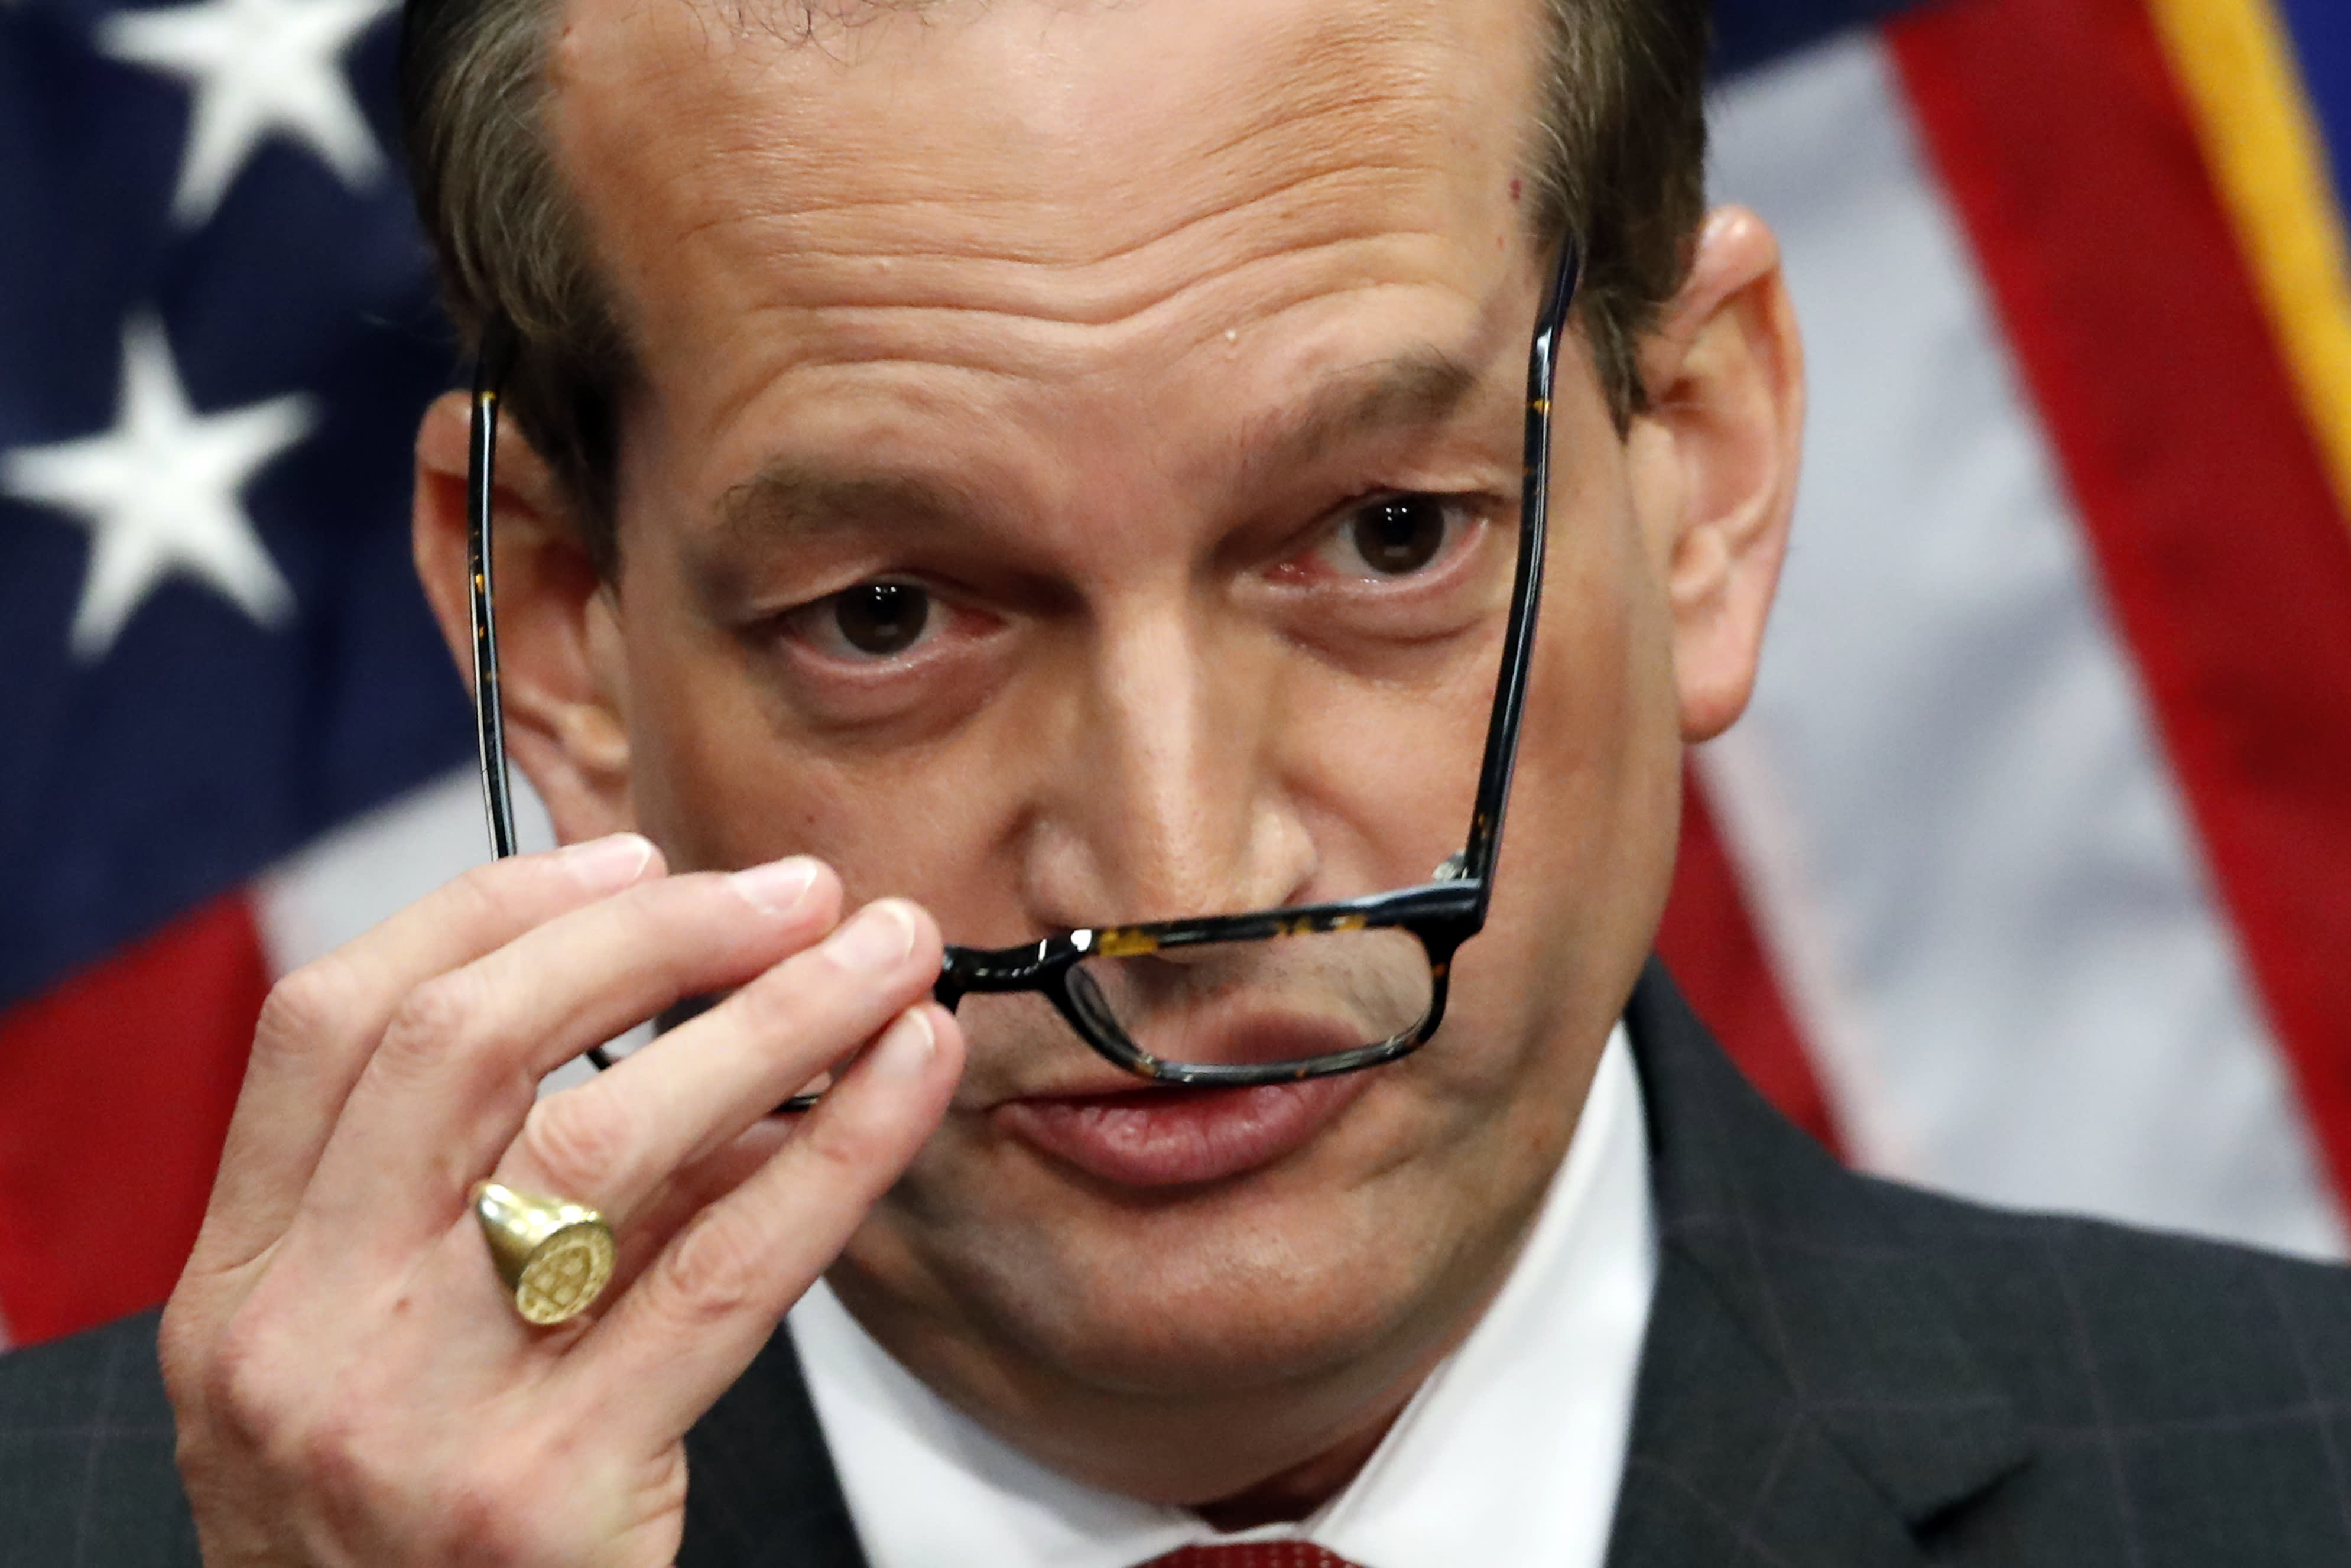 Labor Secretary Alex Acosta speaks during a news conference at the Department of Labor, Wednesday, July 10, 2019, in Washington. (AP Photo/Alex Brandon)